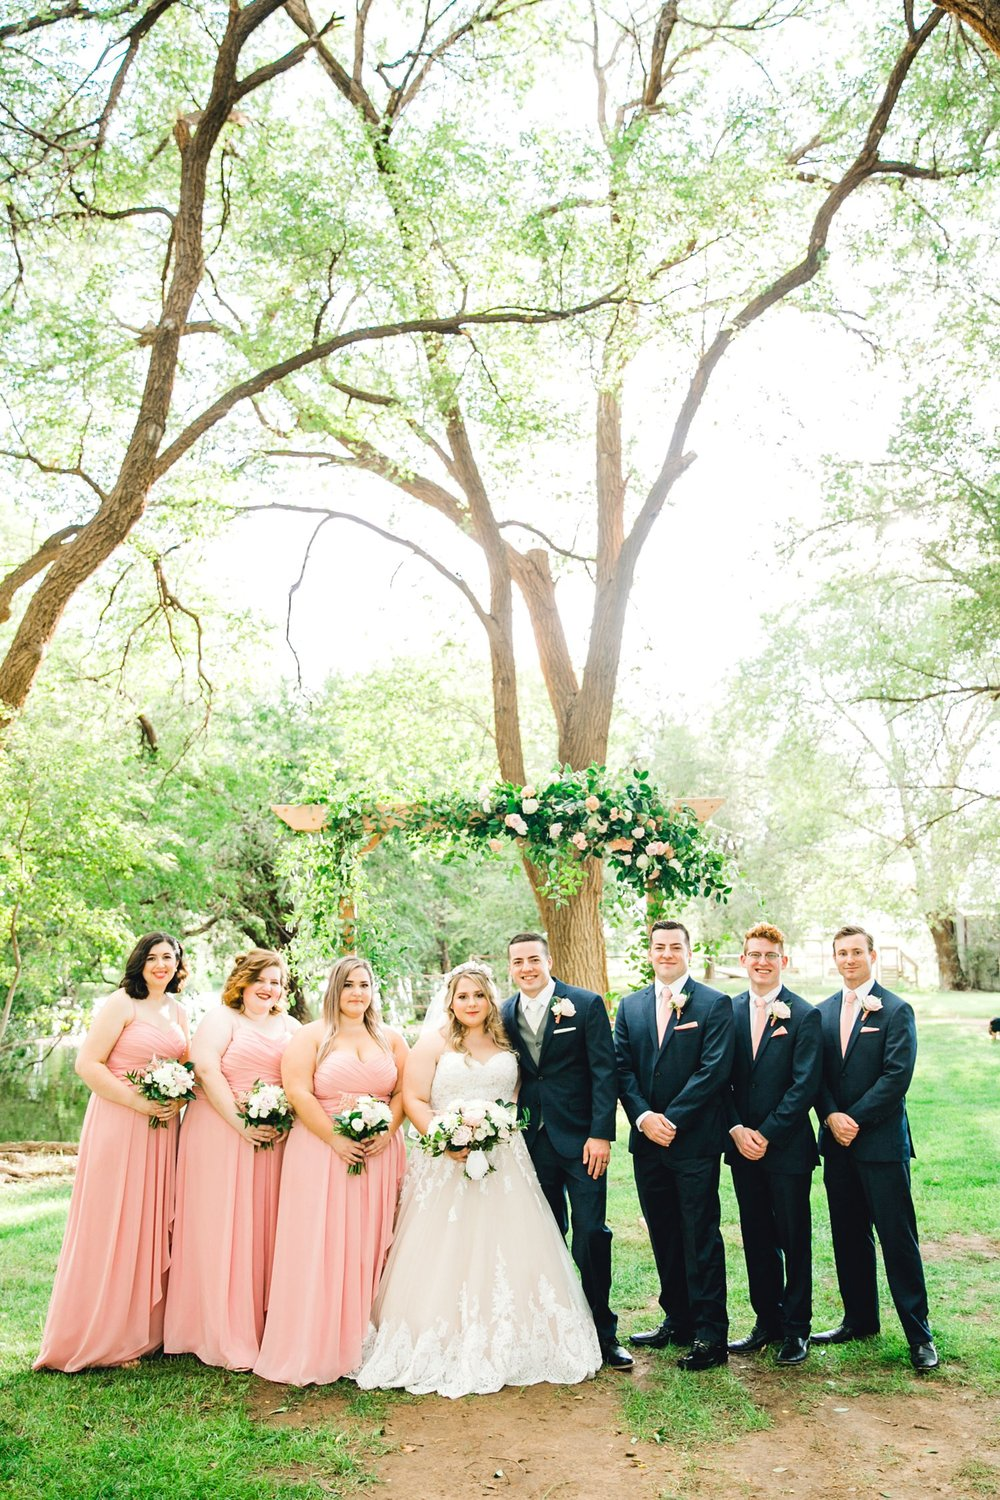 SARAH_AND_GEOFFREY_SHARP_SPIRIT_RANCH_WEDDING_ALLEEJ_LUBBOCK_TX_0093.jpg